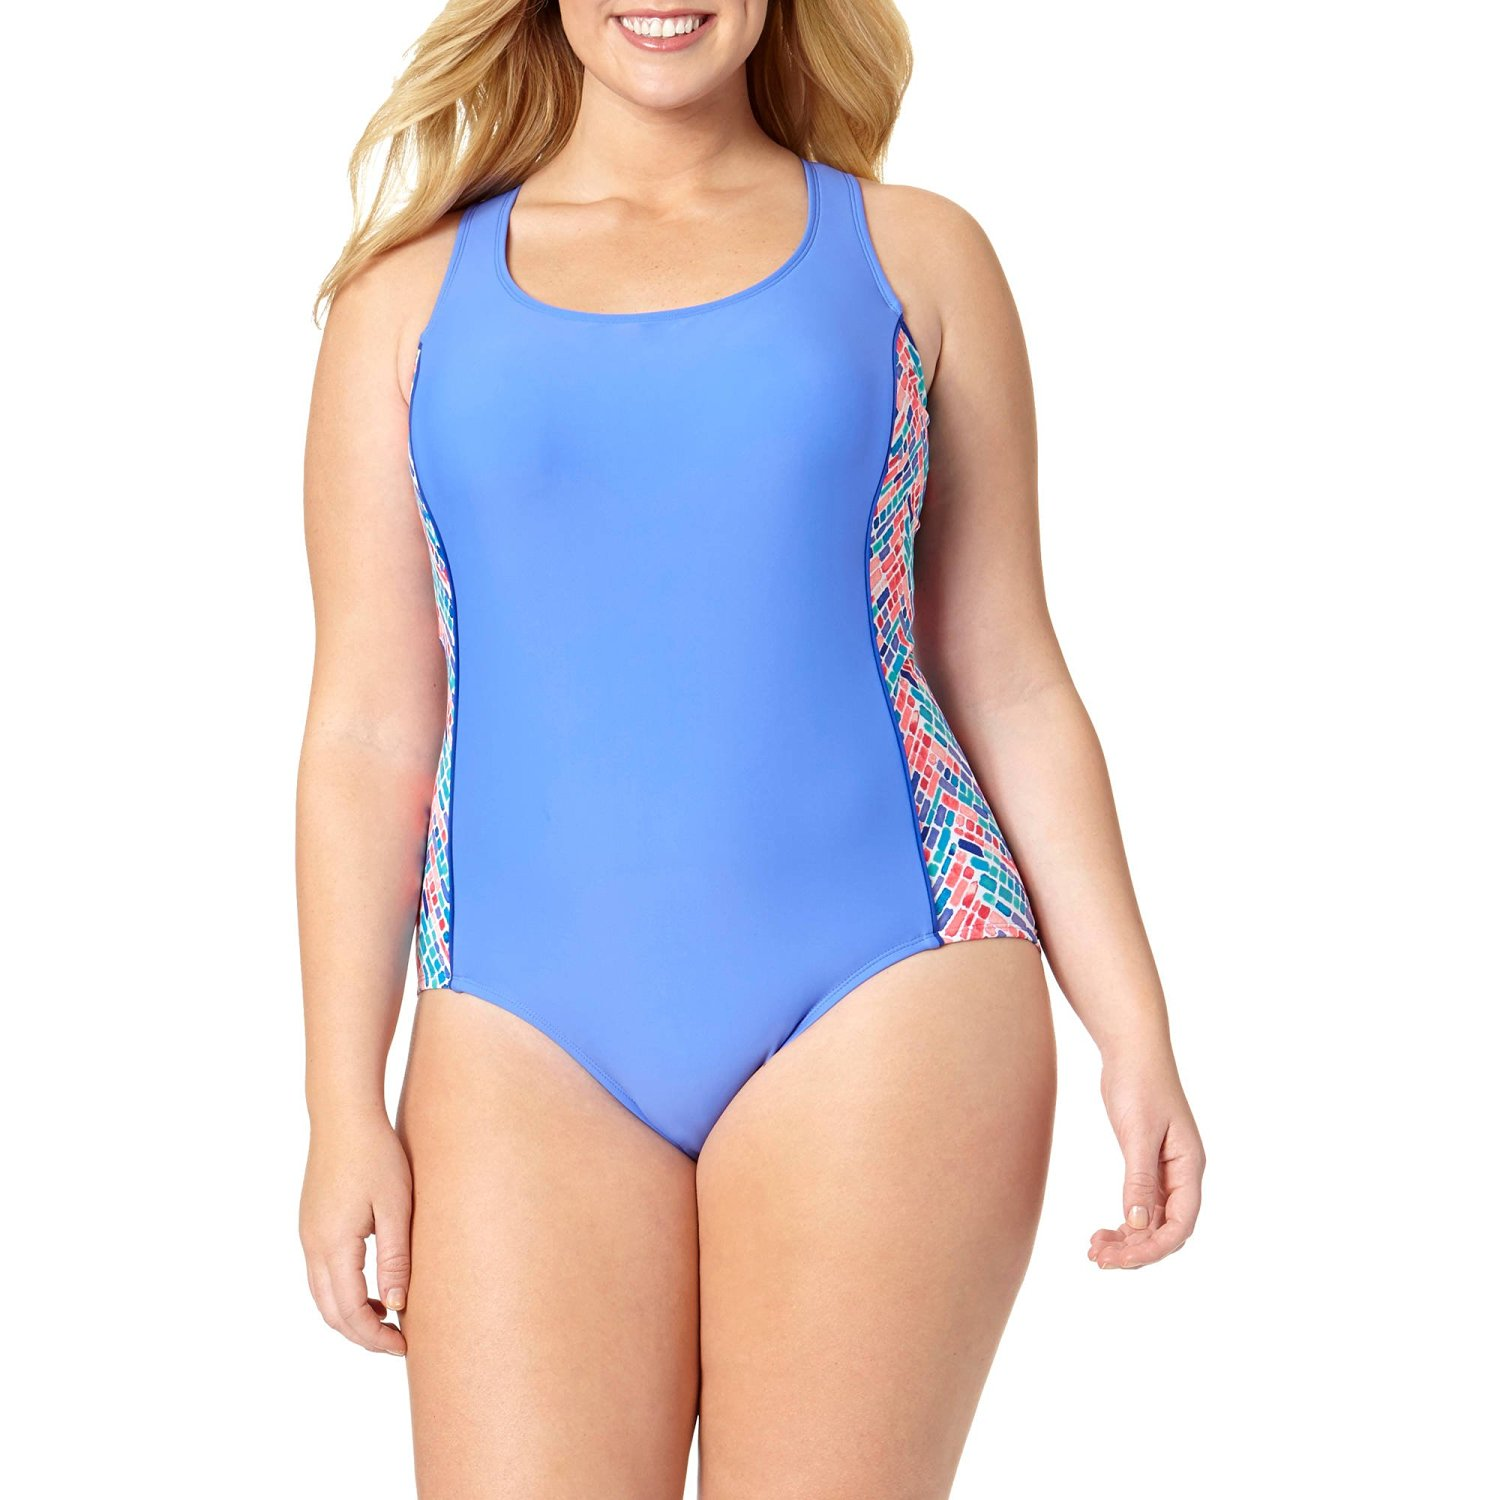 bcafbc321d0 Catalina Women s Rainbow Road High Neck Athletic One-Piece Swimsuit -  Regular and Plus Sizes